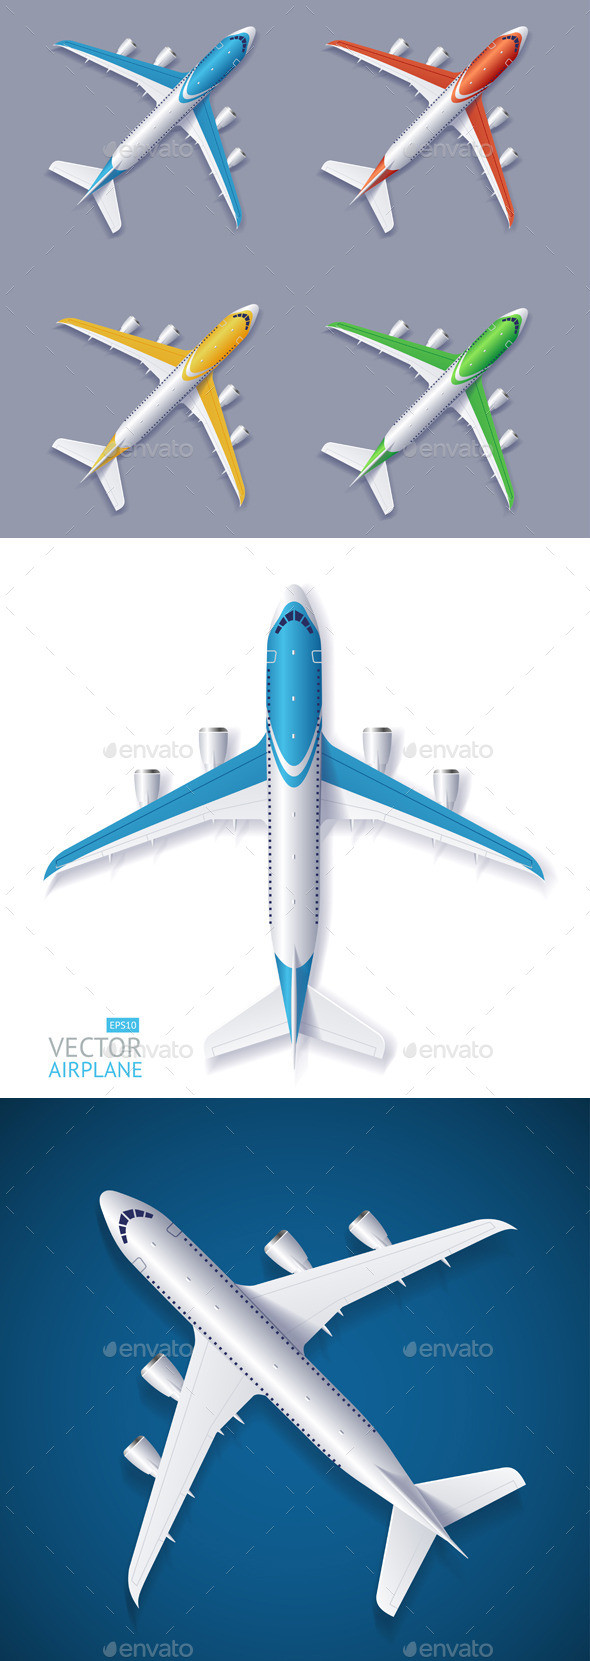 GraphicRiver Vector Airplane Set 11841034